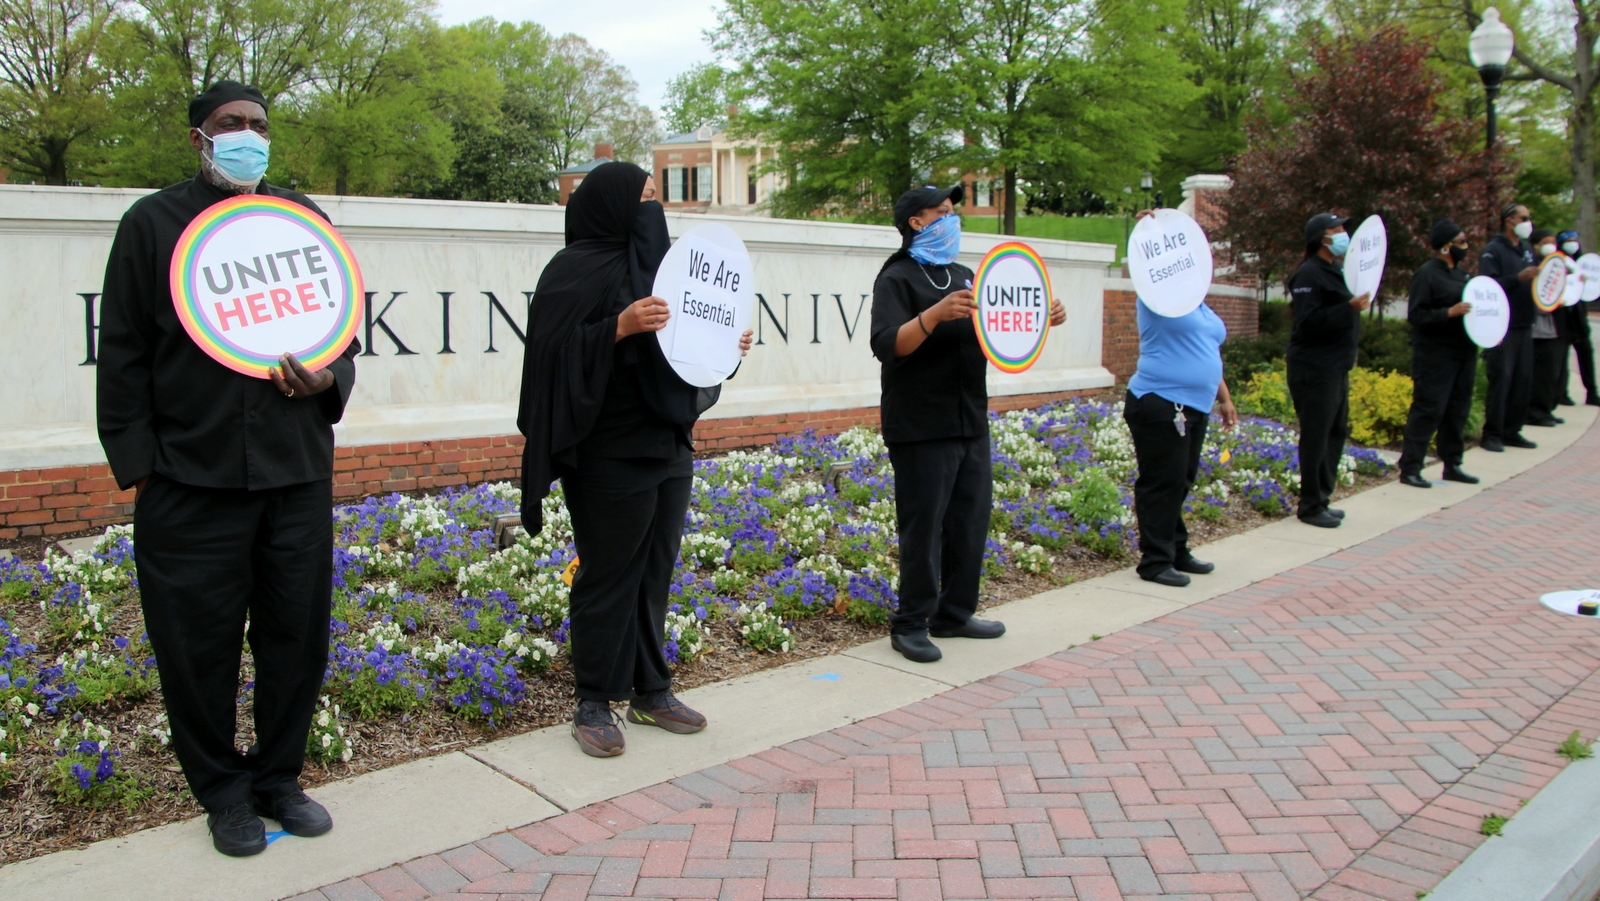 Organized by UNITE HERE Local 7, food service workers protest outside Johns Hopkins Homewood campus. (Fern Shen)